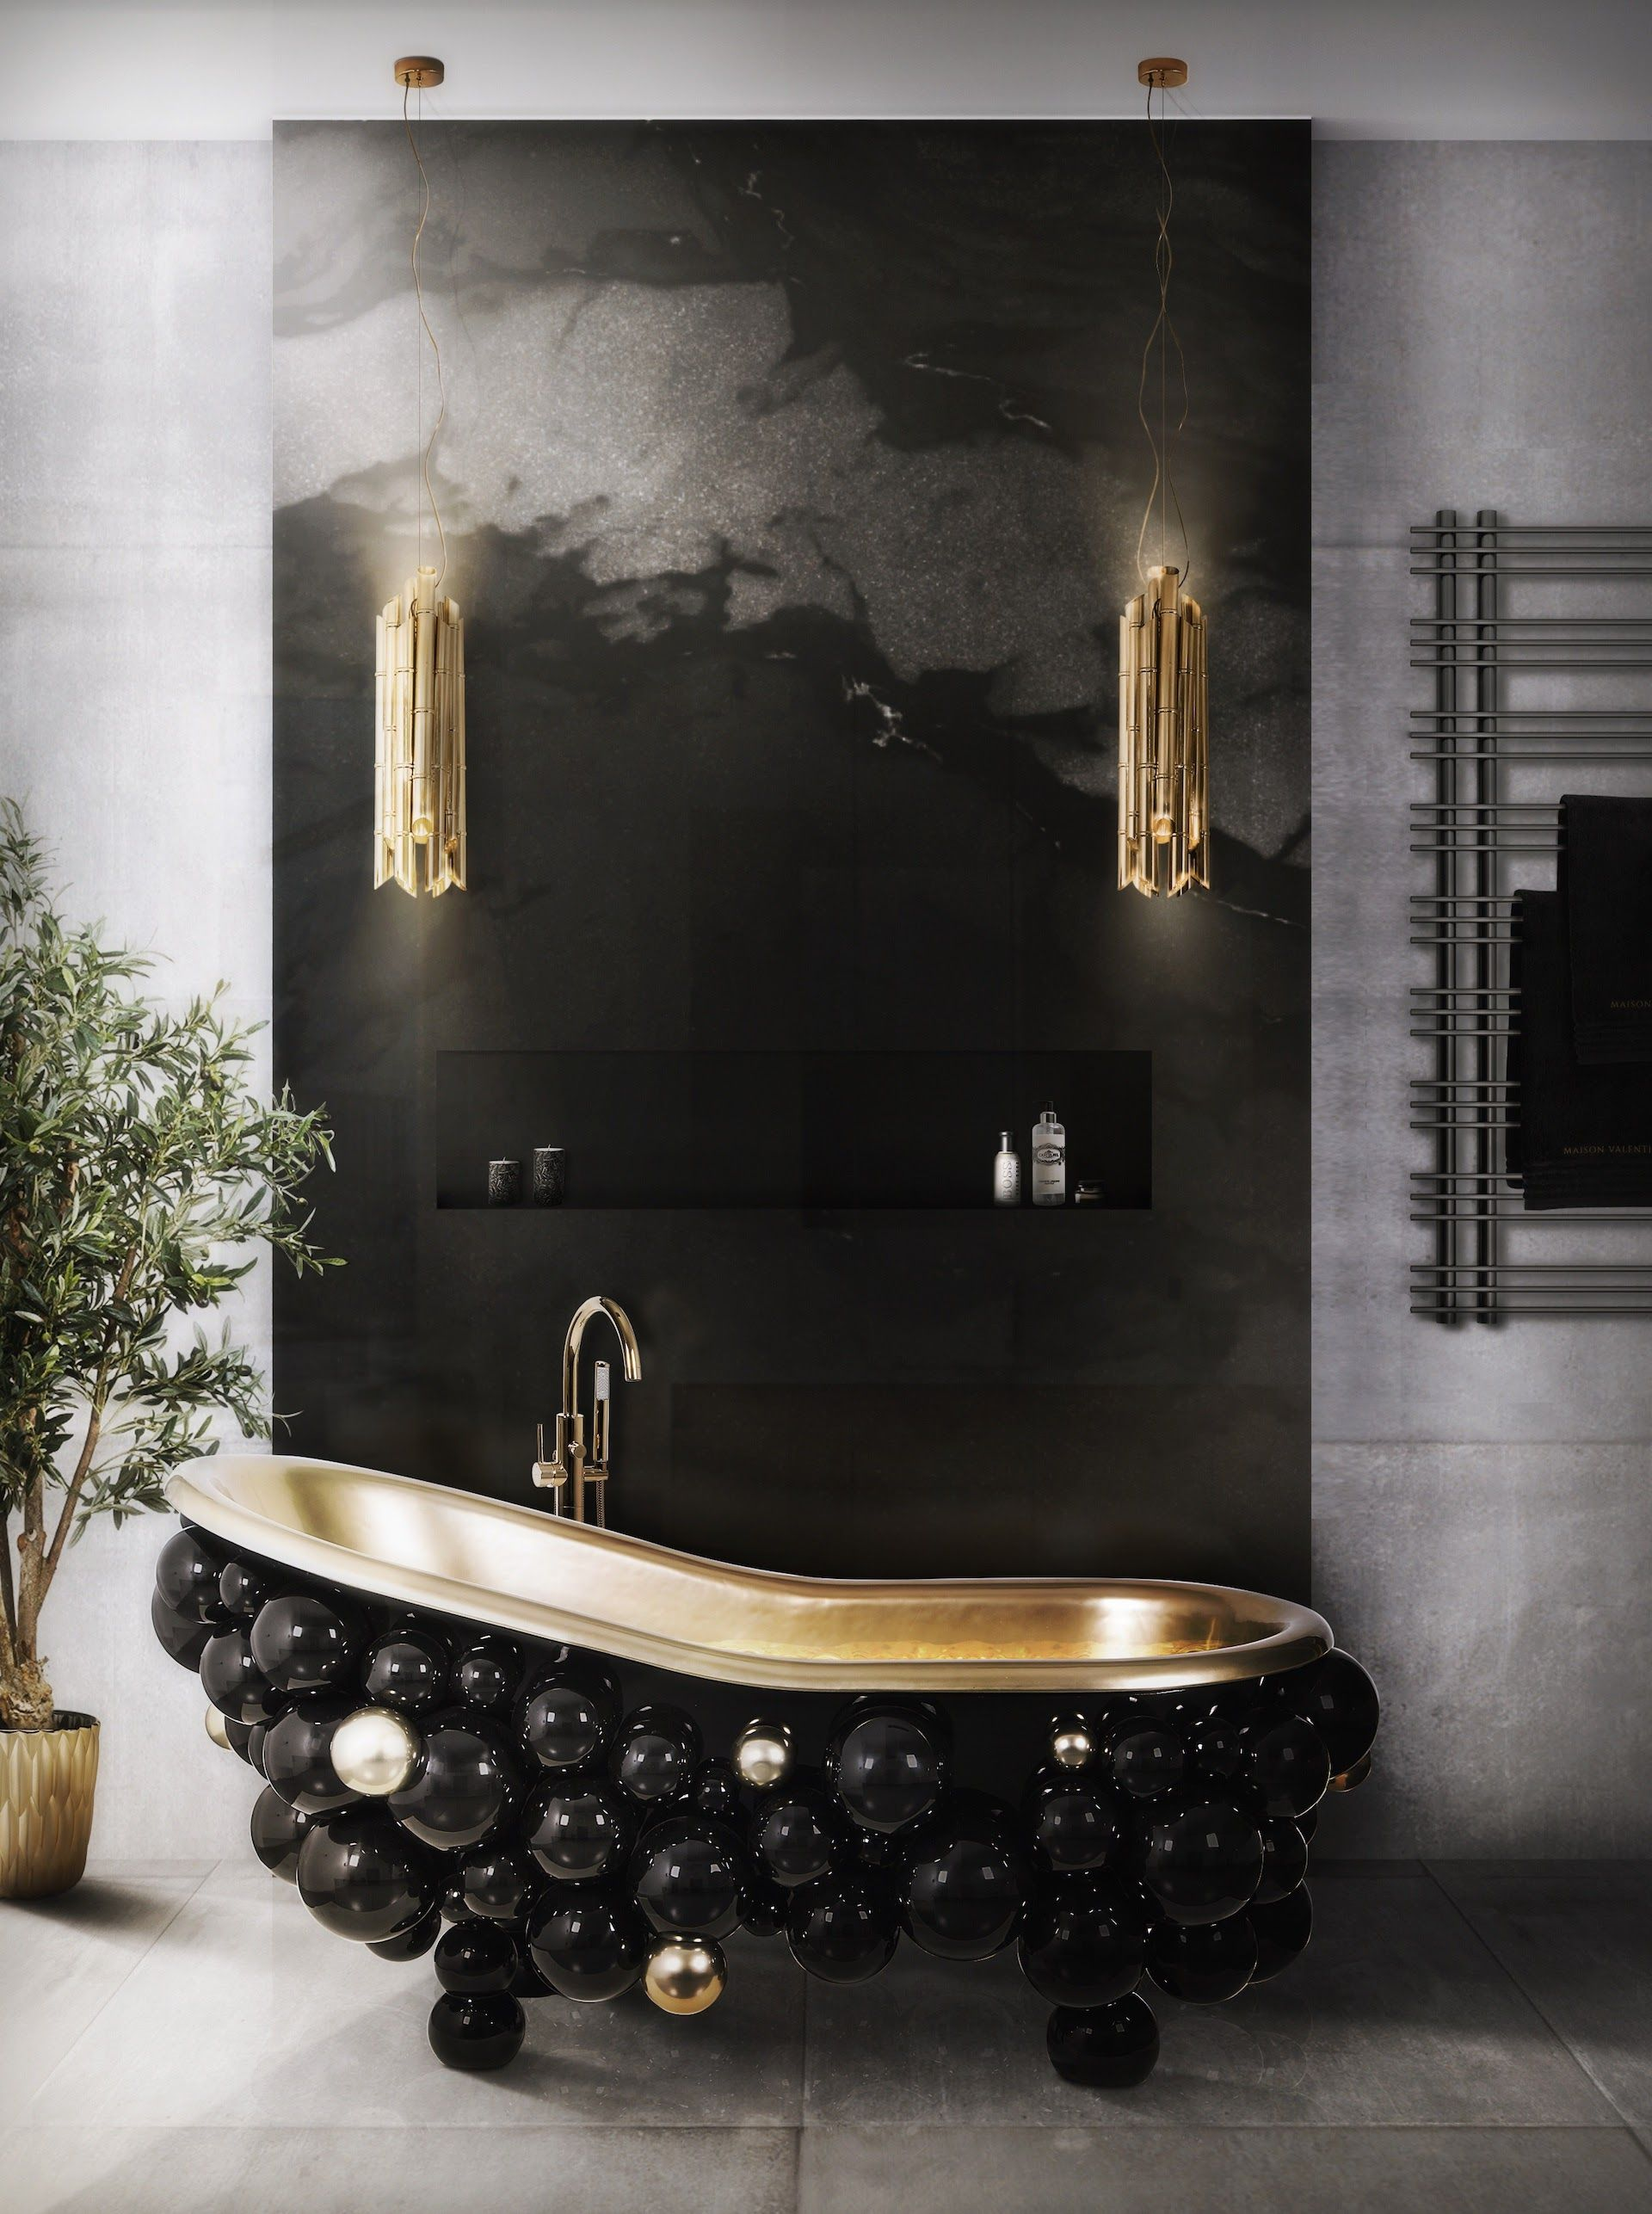 maison valentina baroque freestanding tub filler with gooseneck spout in unlacquered brass freestanding couture black clawfoot tub - the ultimate guide to luxury plumbing by the delight of design